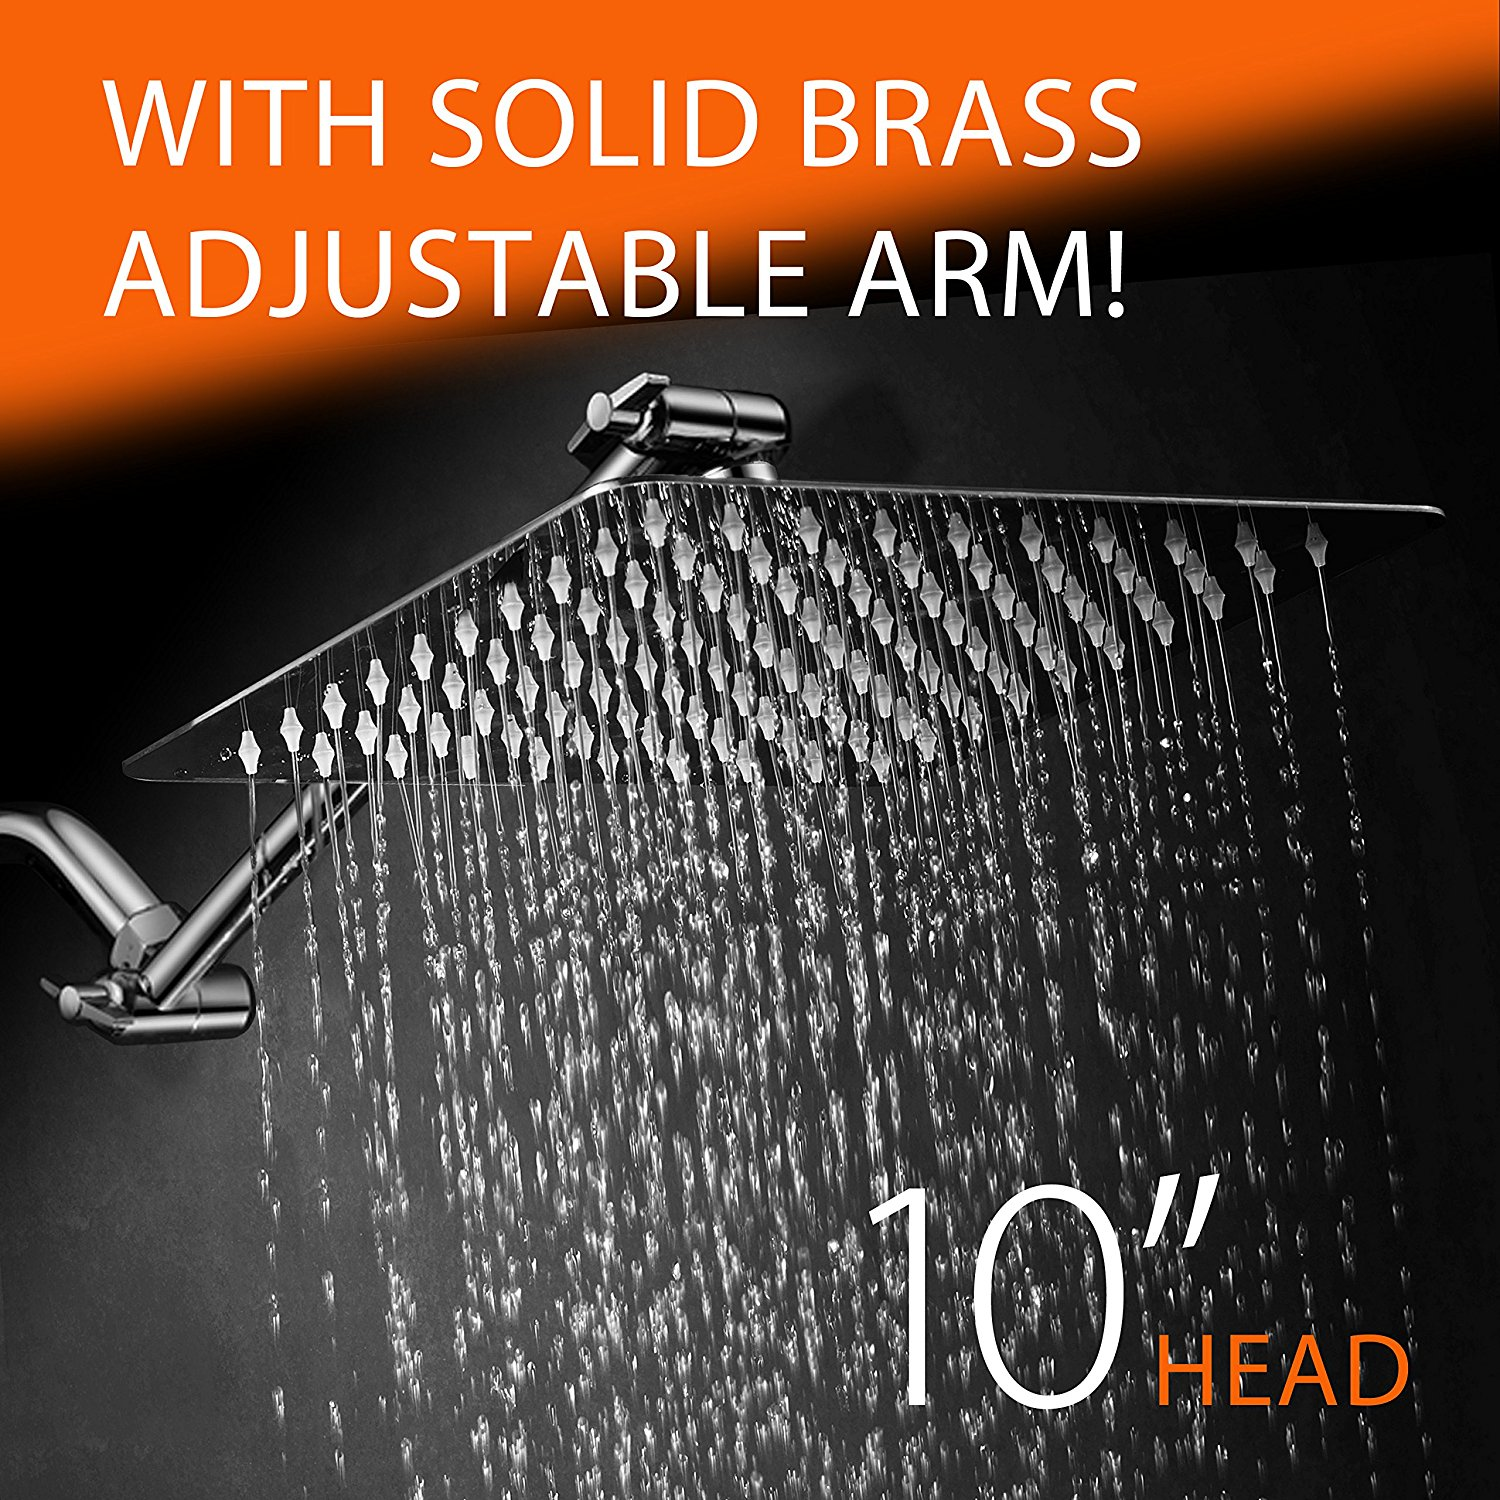 HotelSpa® Giant 10-inch Stainless Steel Rainfall Square Showerhead with 11-inch Solid Brass Adjustable Extension Arm